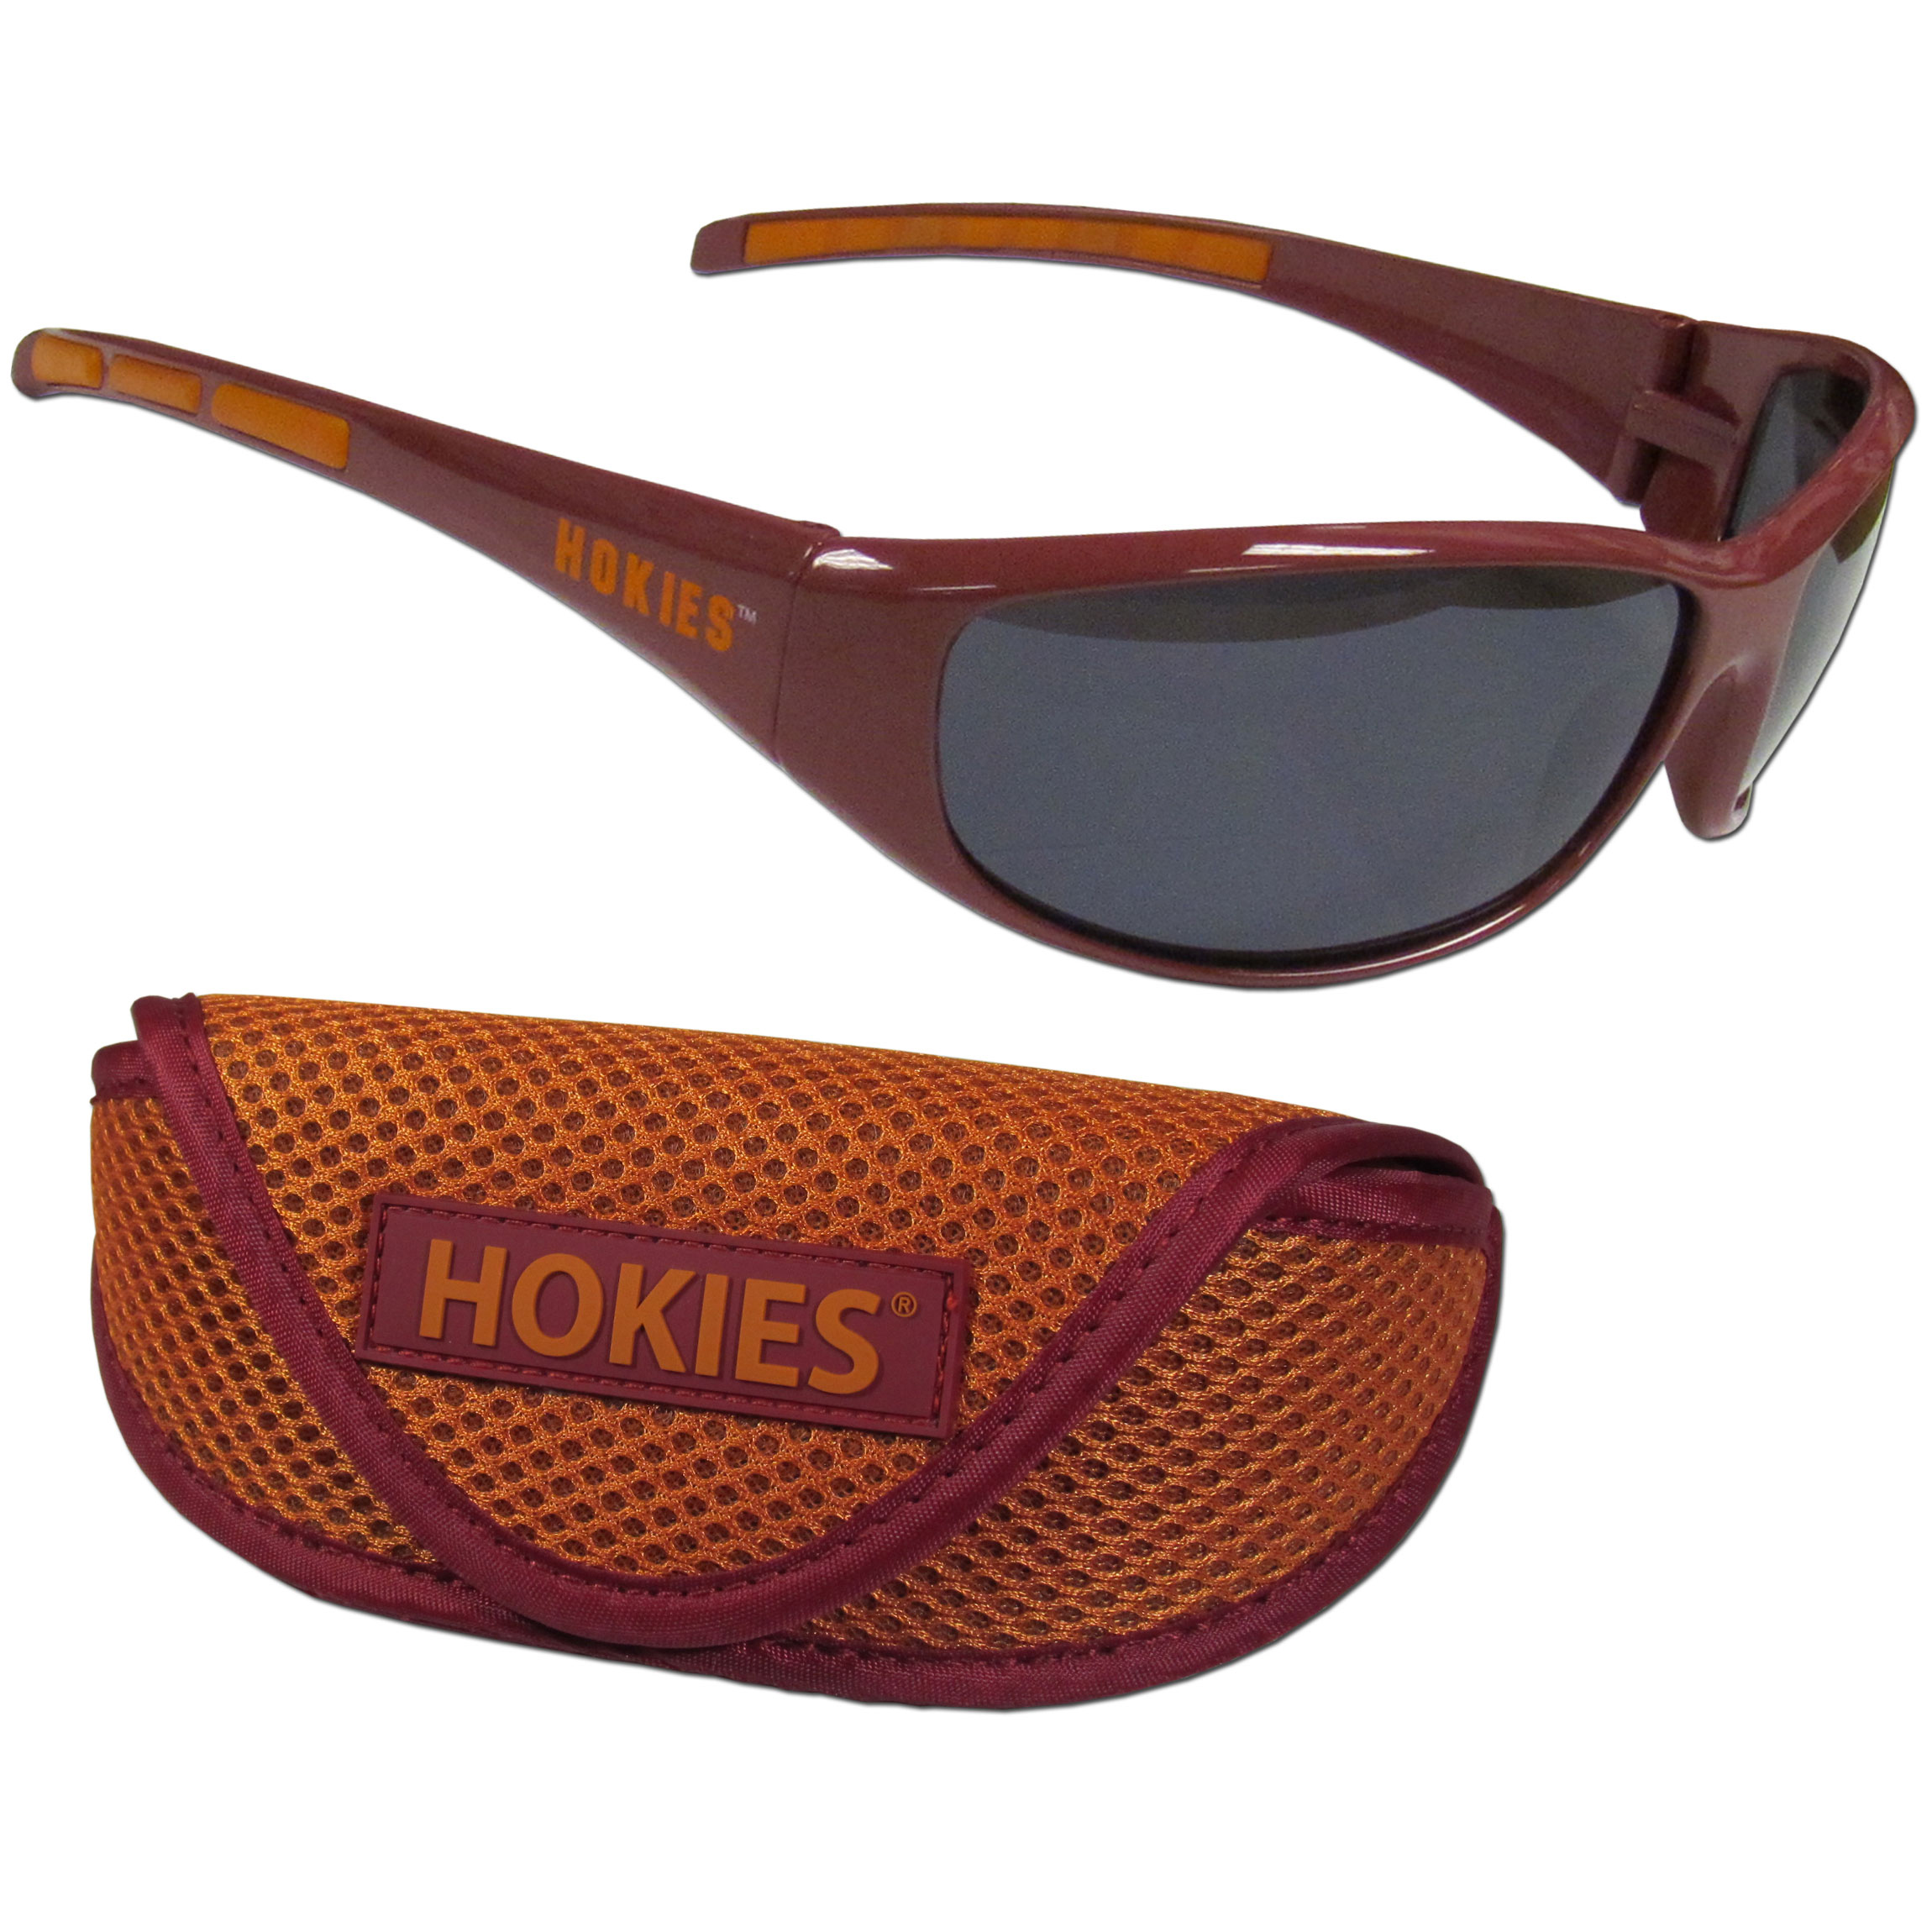 Virginia Tech Hokies Wrap Sunglass and Case Set - This great set includes a high quality pair of Virginia Tech Hokies wrap sunglasses and soft sport carrying case.